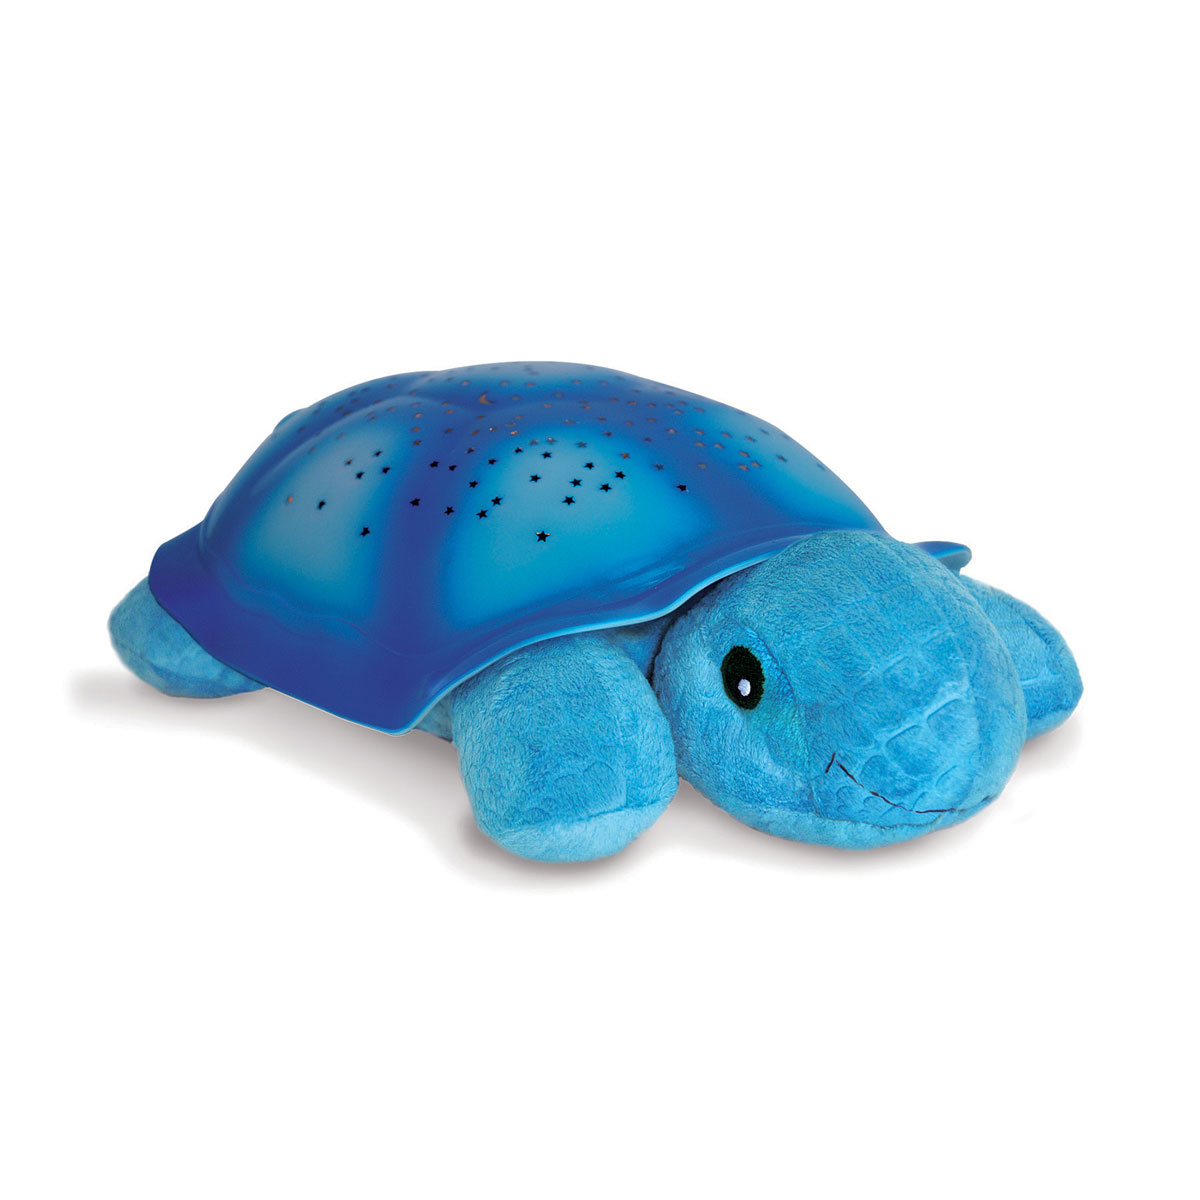 Veilleuse Veilleuse Twilight Turtle - Blue Veilleuse Twilight Turtle - Blue